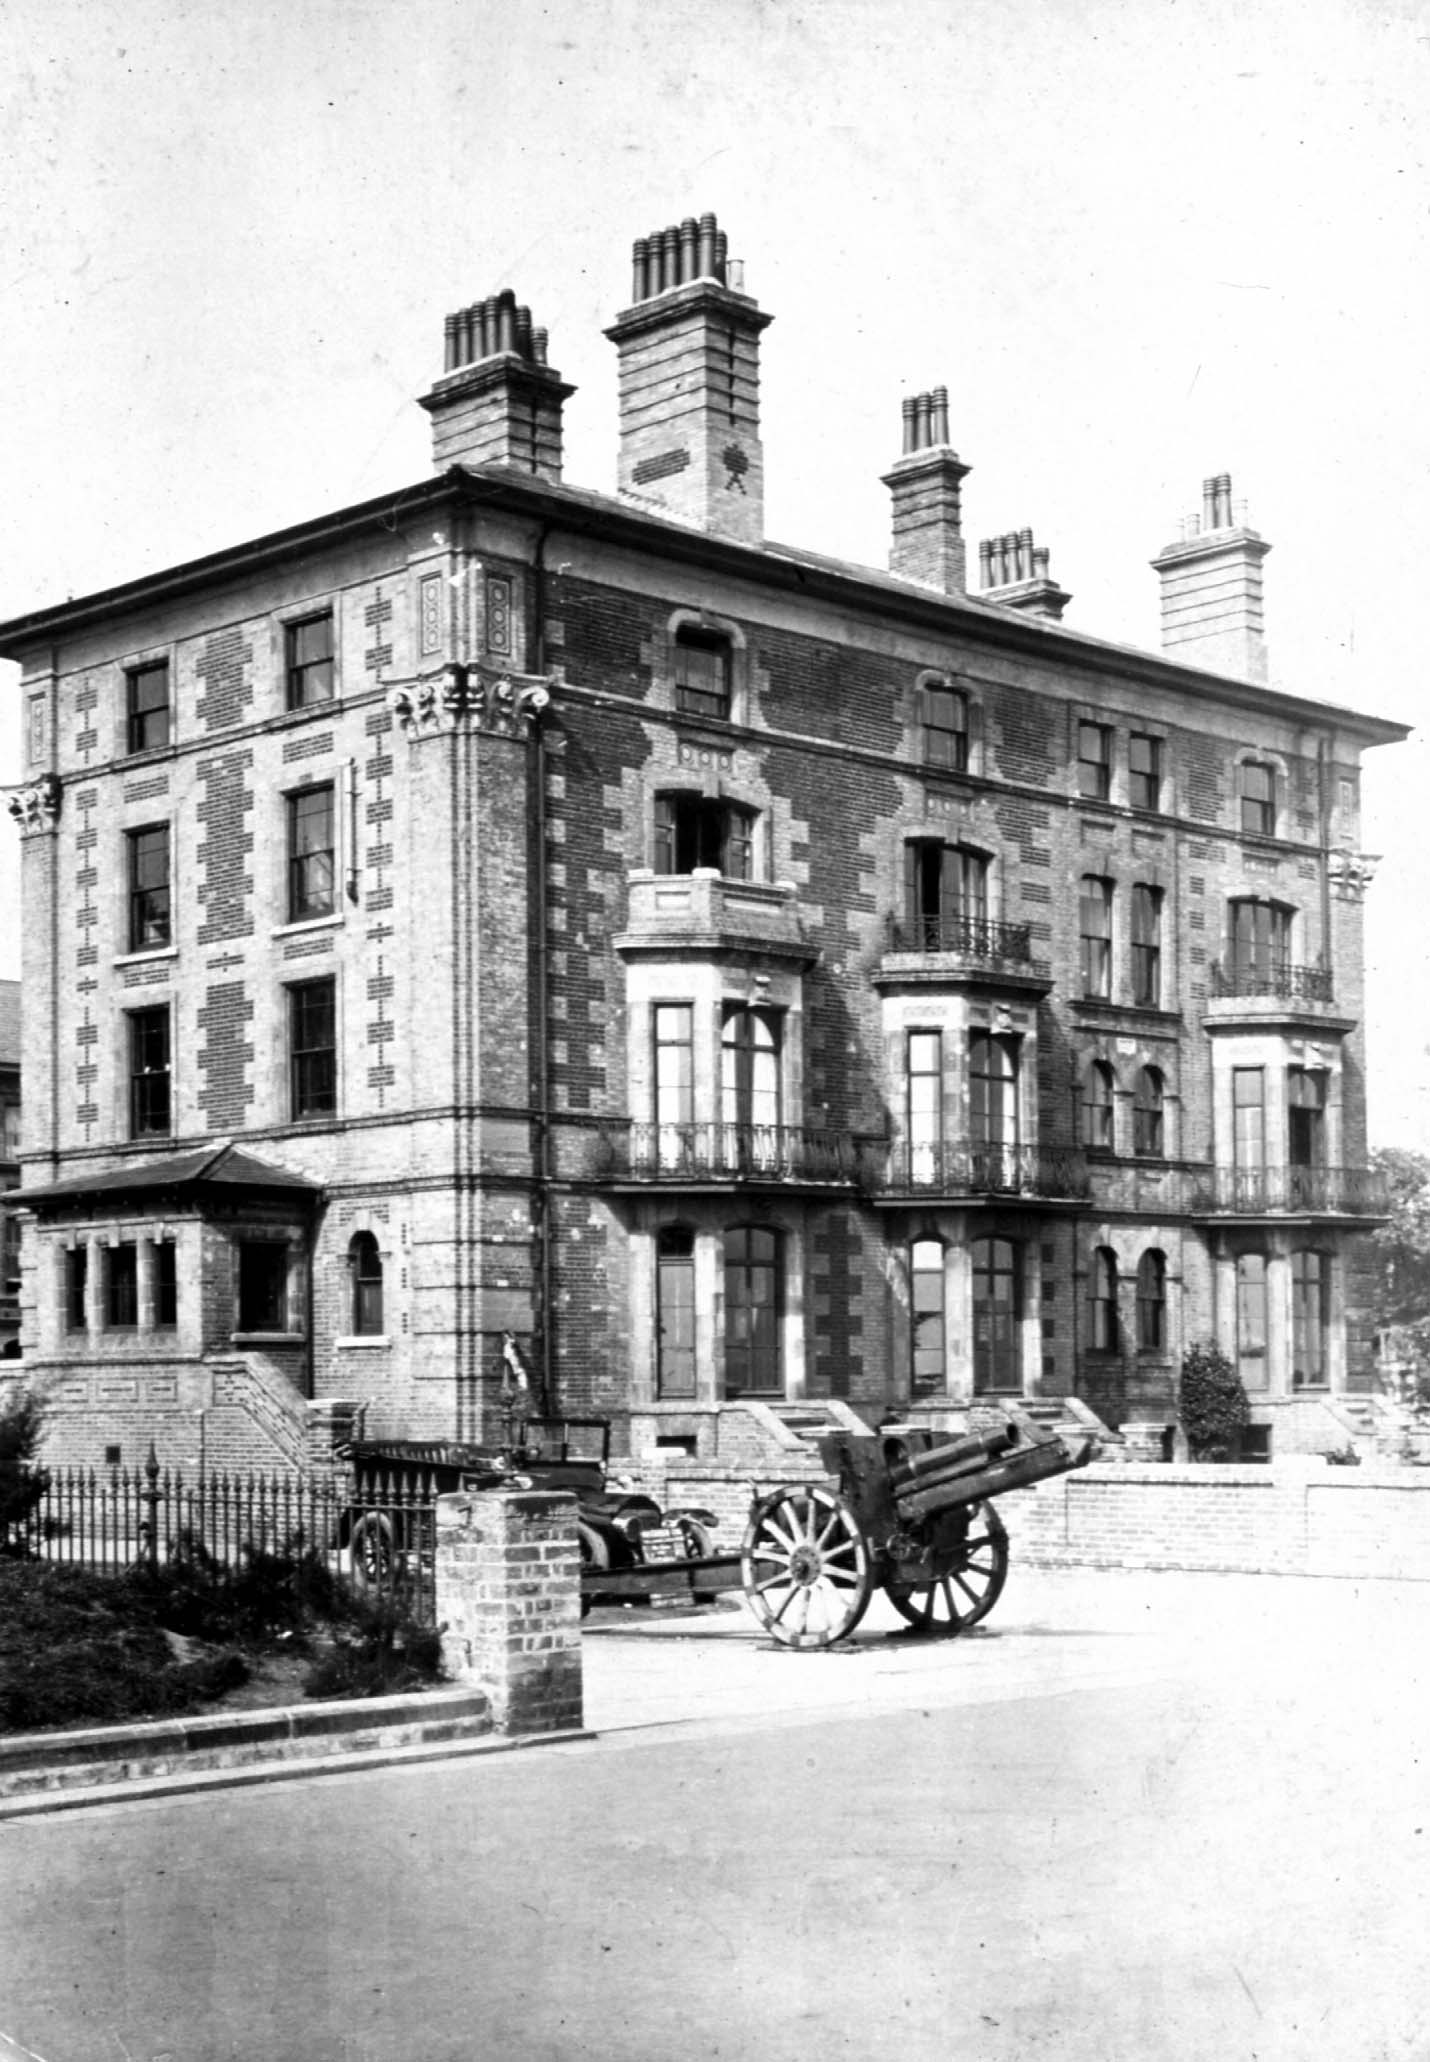 a black and white photograph of a building